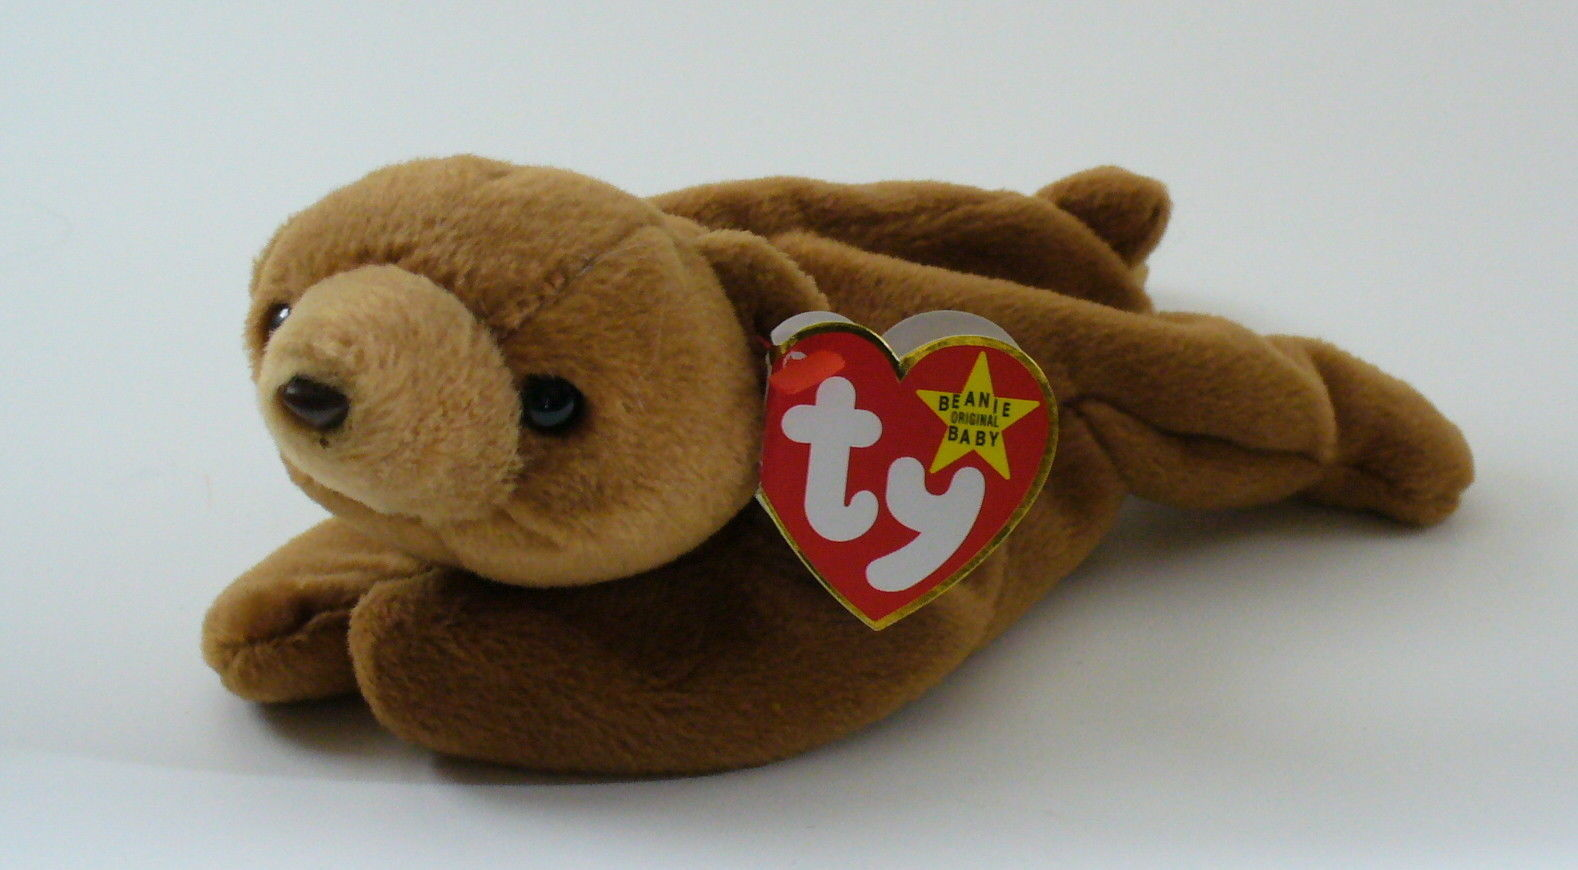 757dec757c5 Retired TY Beanie Babies Cubbie the Bear and 50 similar items